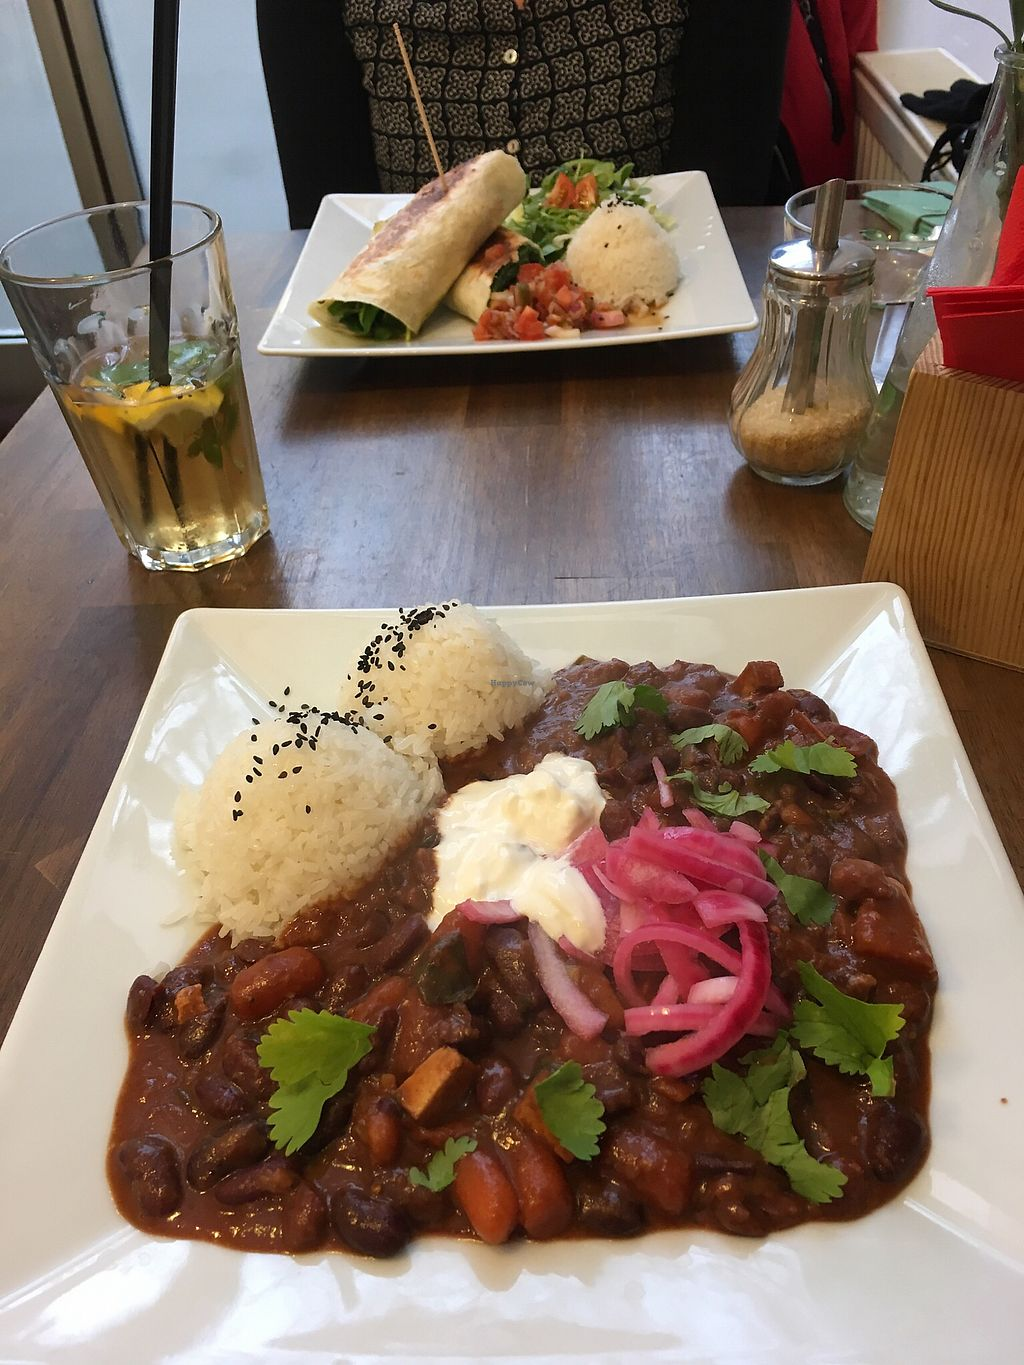 """Photo of Natureza  by <a href=""""/members/profile/LoesjeMn"""">LoesjeMn</a> <br/>Bean chili And spinach quesadila <br/> December 28, 2017  - <a href='/contact/abuse/image/92843/340179'>Report</a>"""